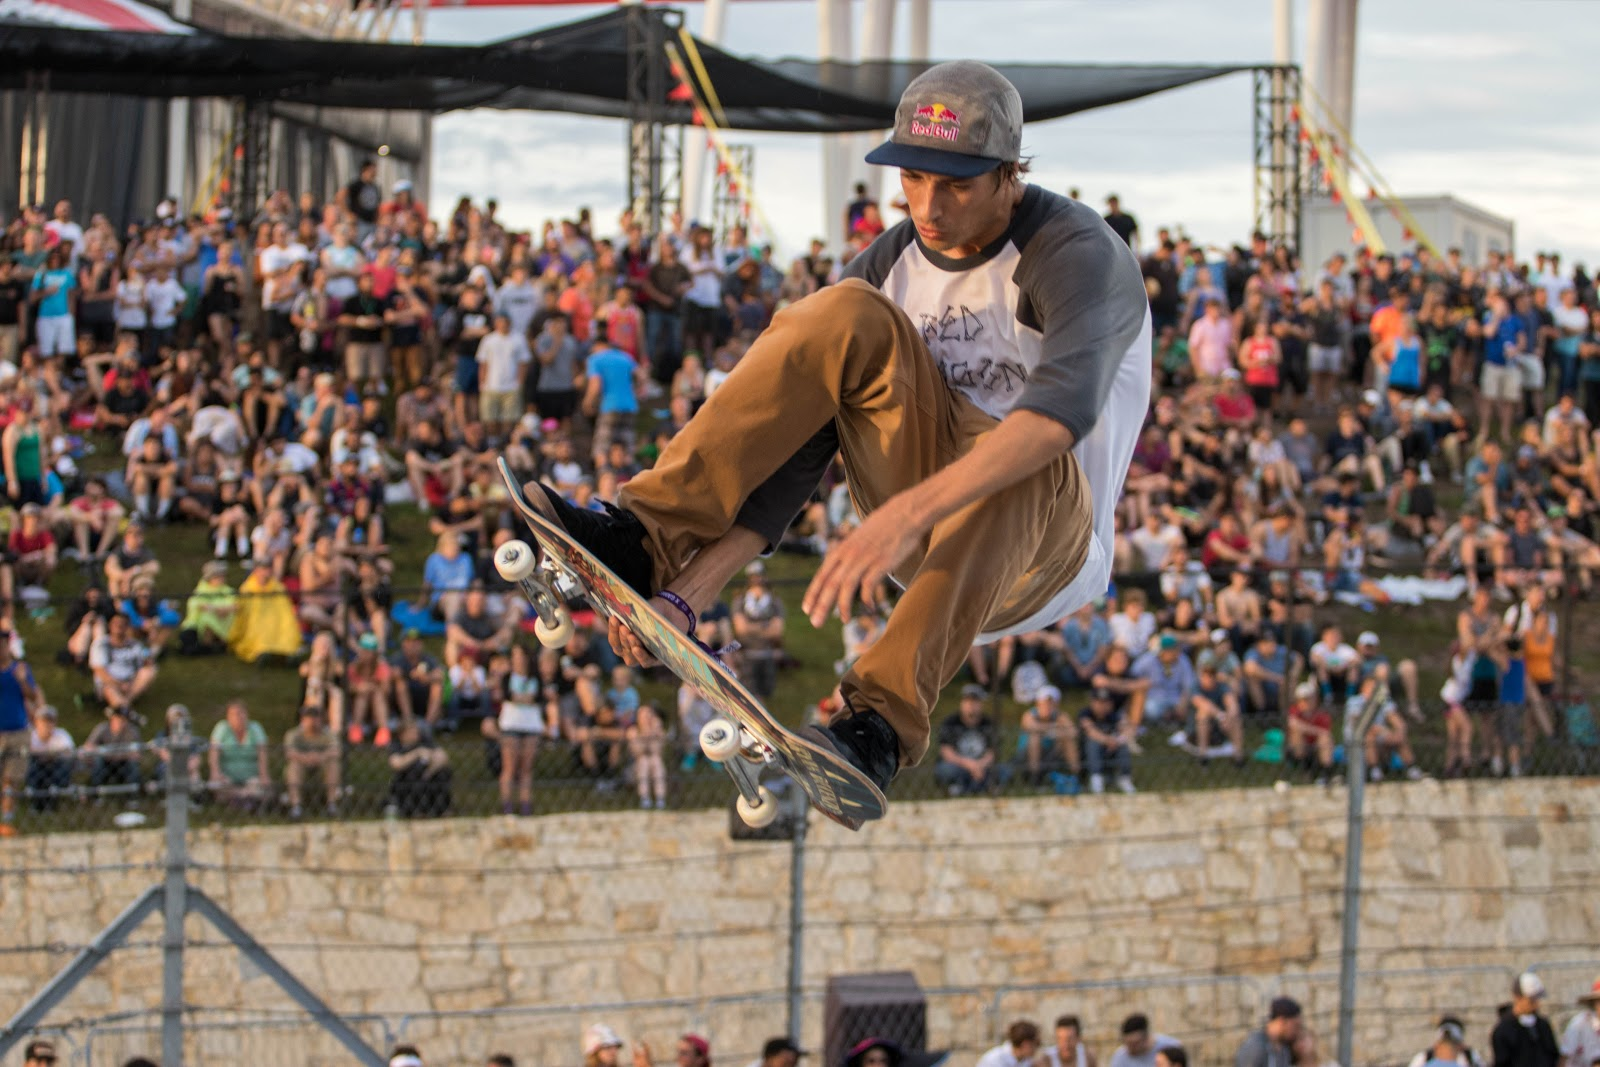 Ryan Decenzo during Men's Skateboard Street